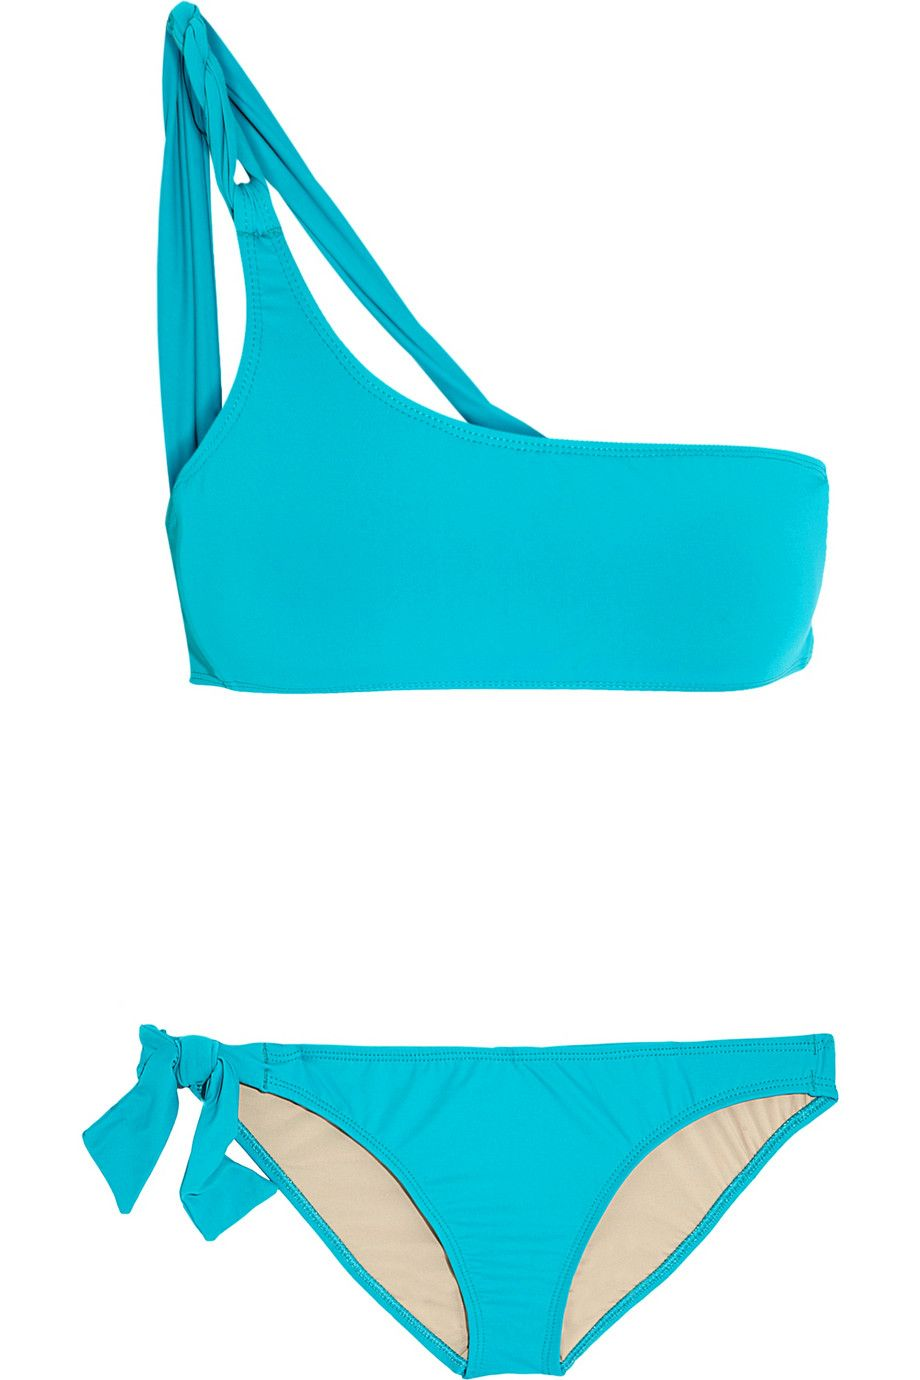 Calvi one-shoulder bikini set - Blue Tara Matthews Discount Codes Clearance Store Sale Reliable Latest Collections Outlet Many Kinds Of 8DpvY